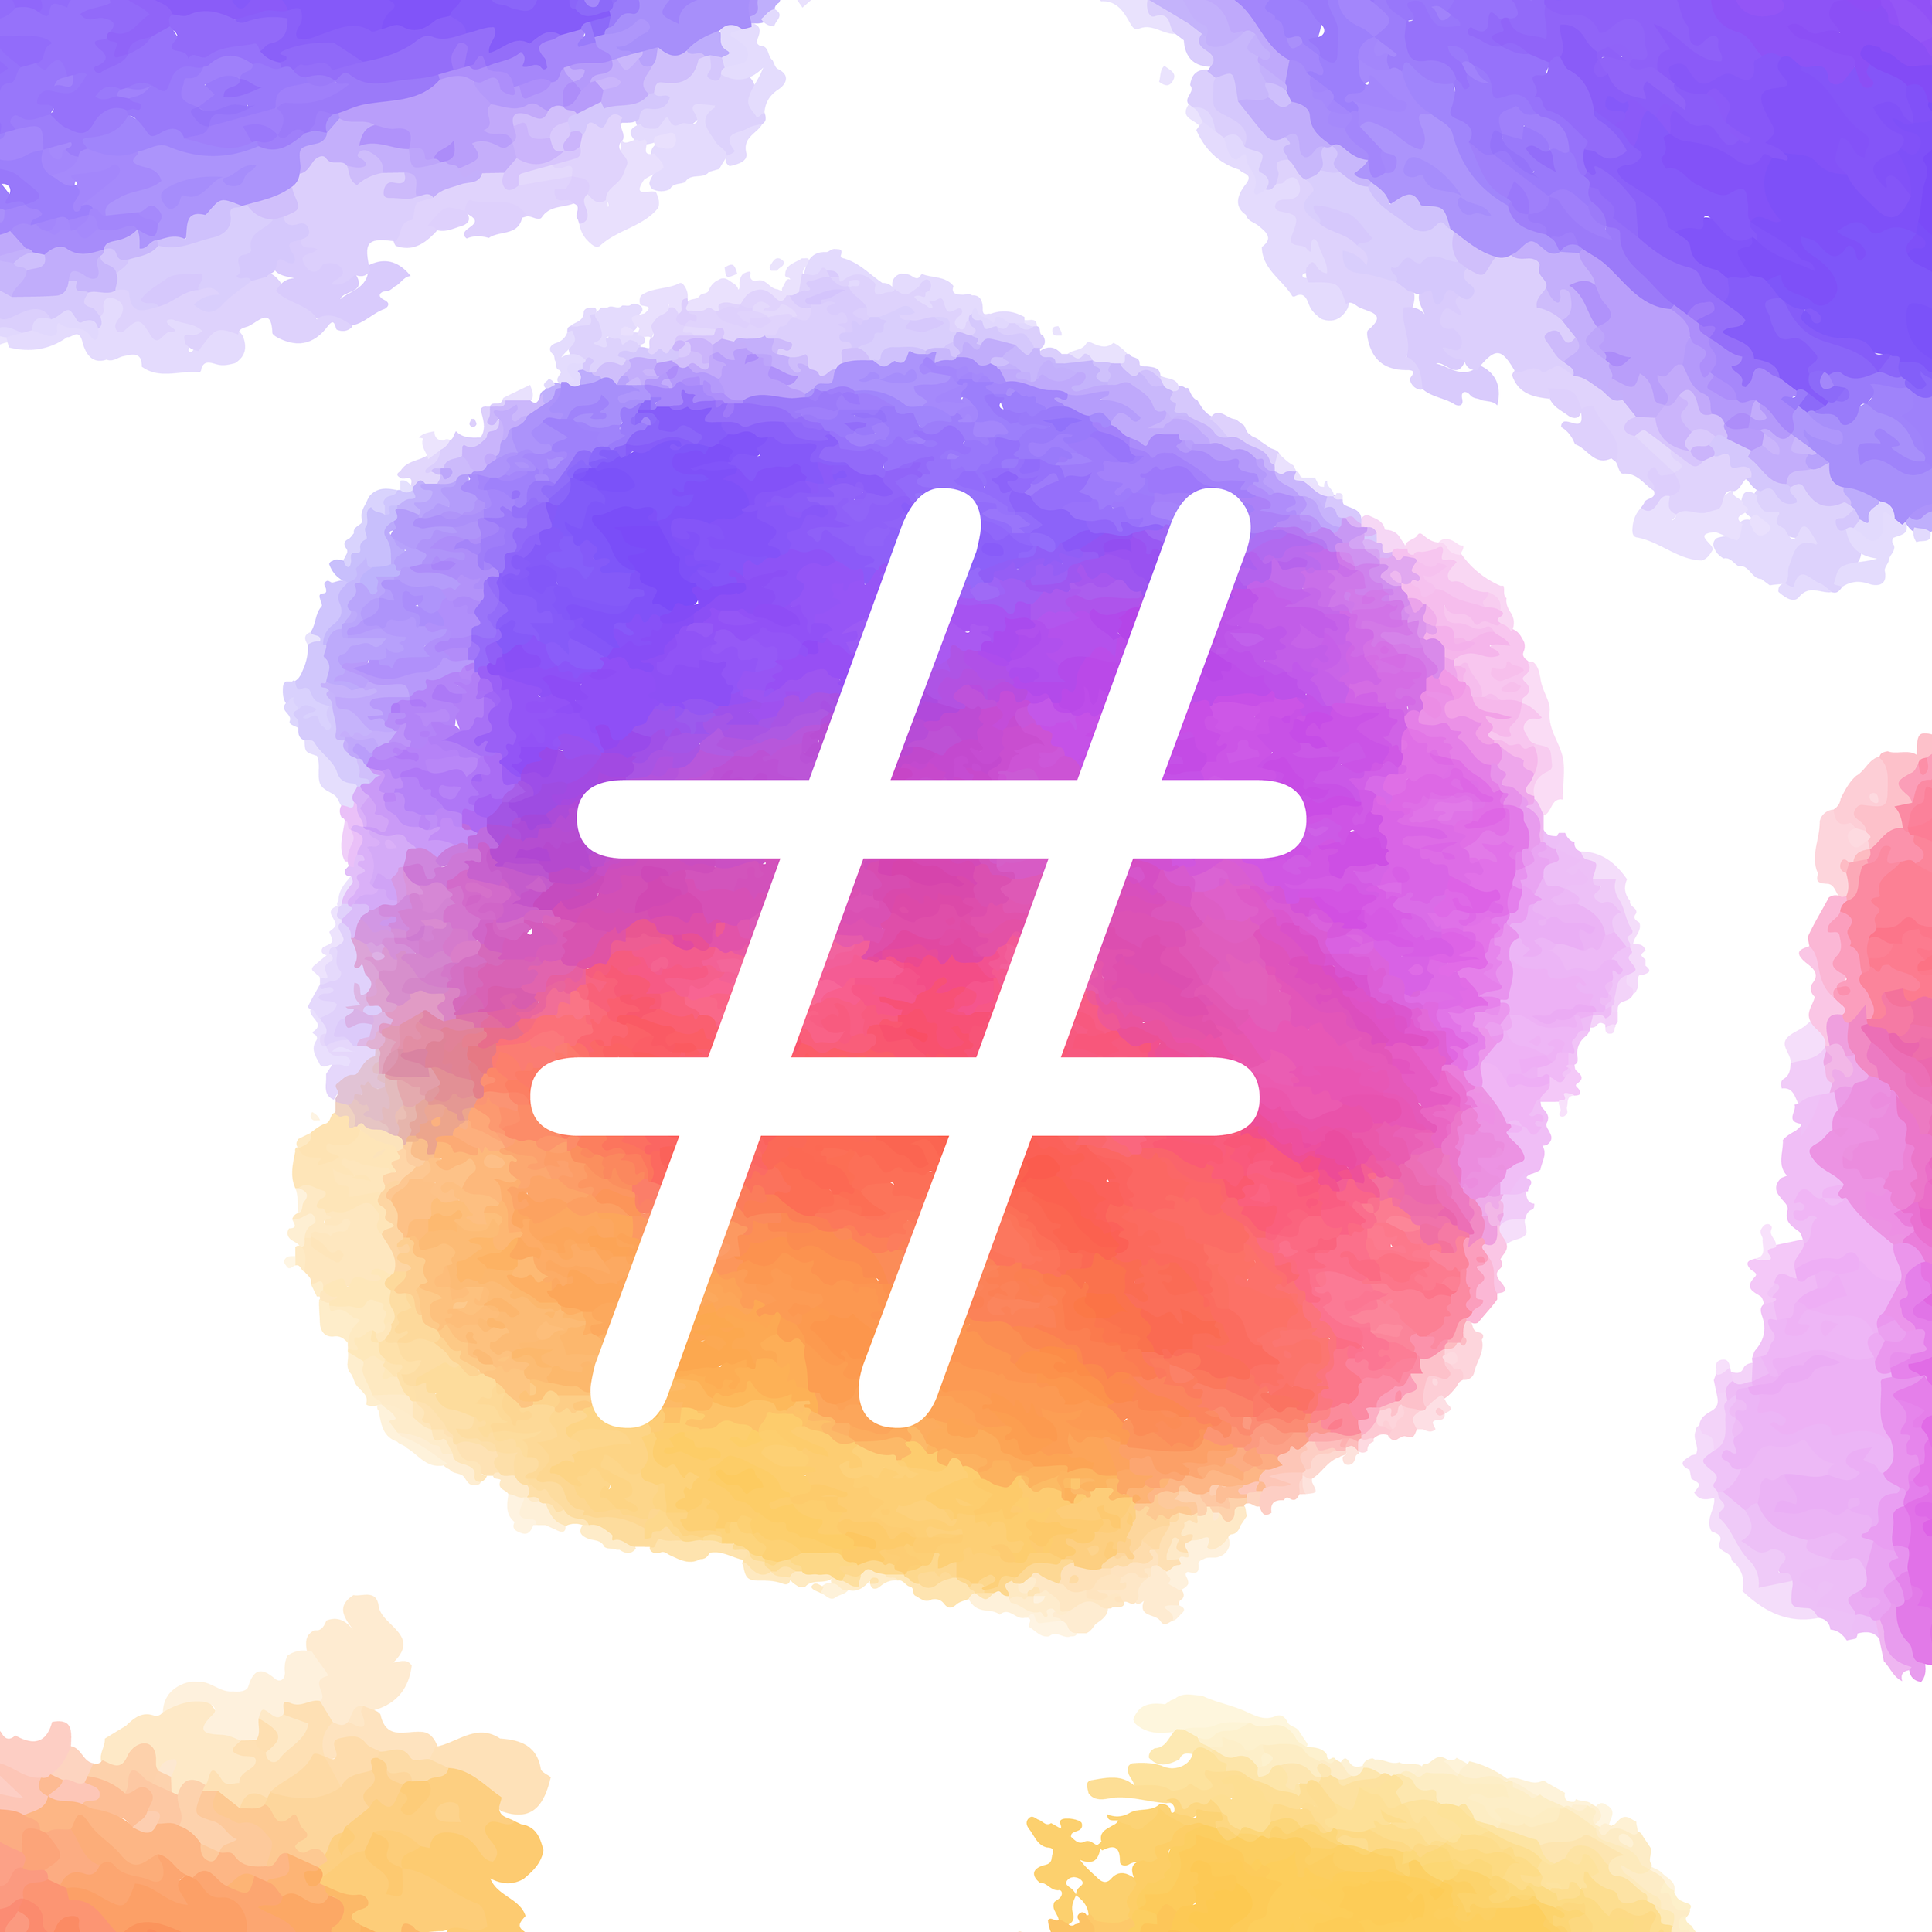 hashtags_embed_img.png